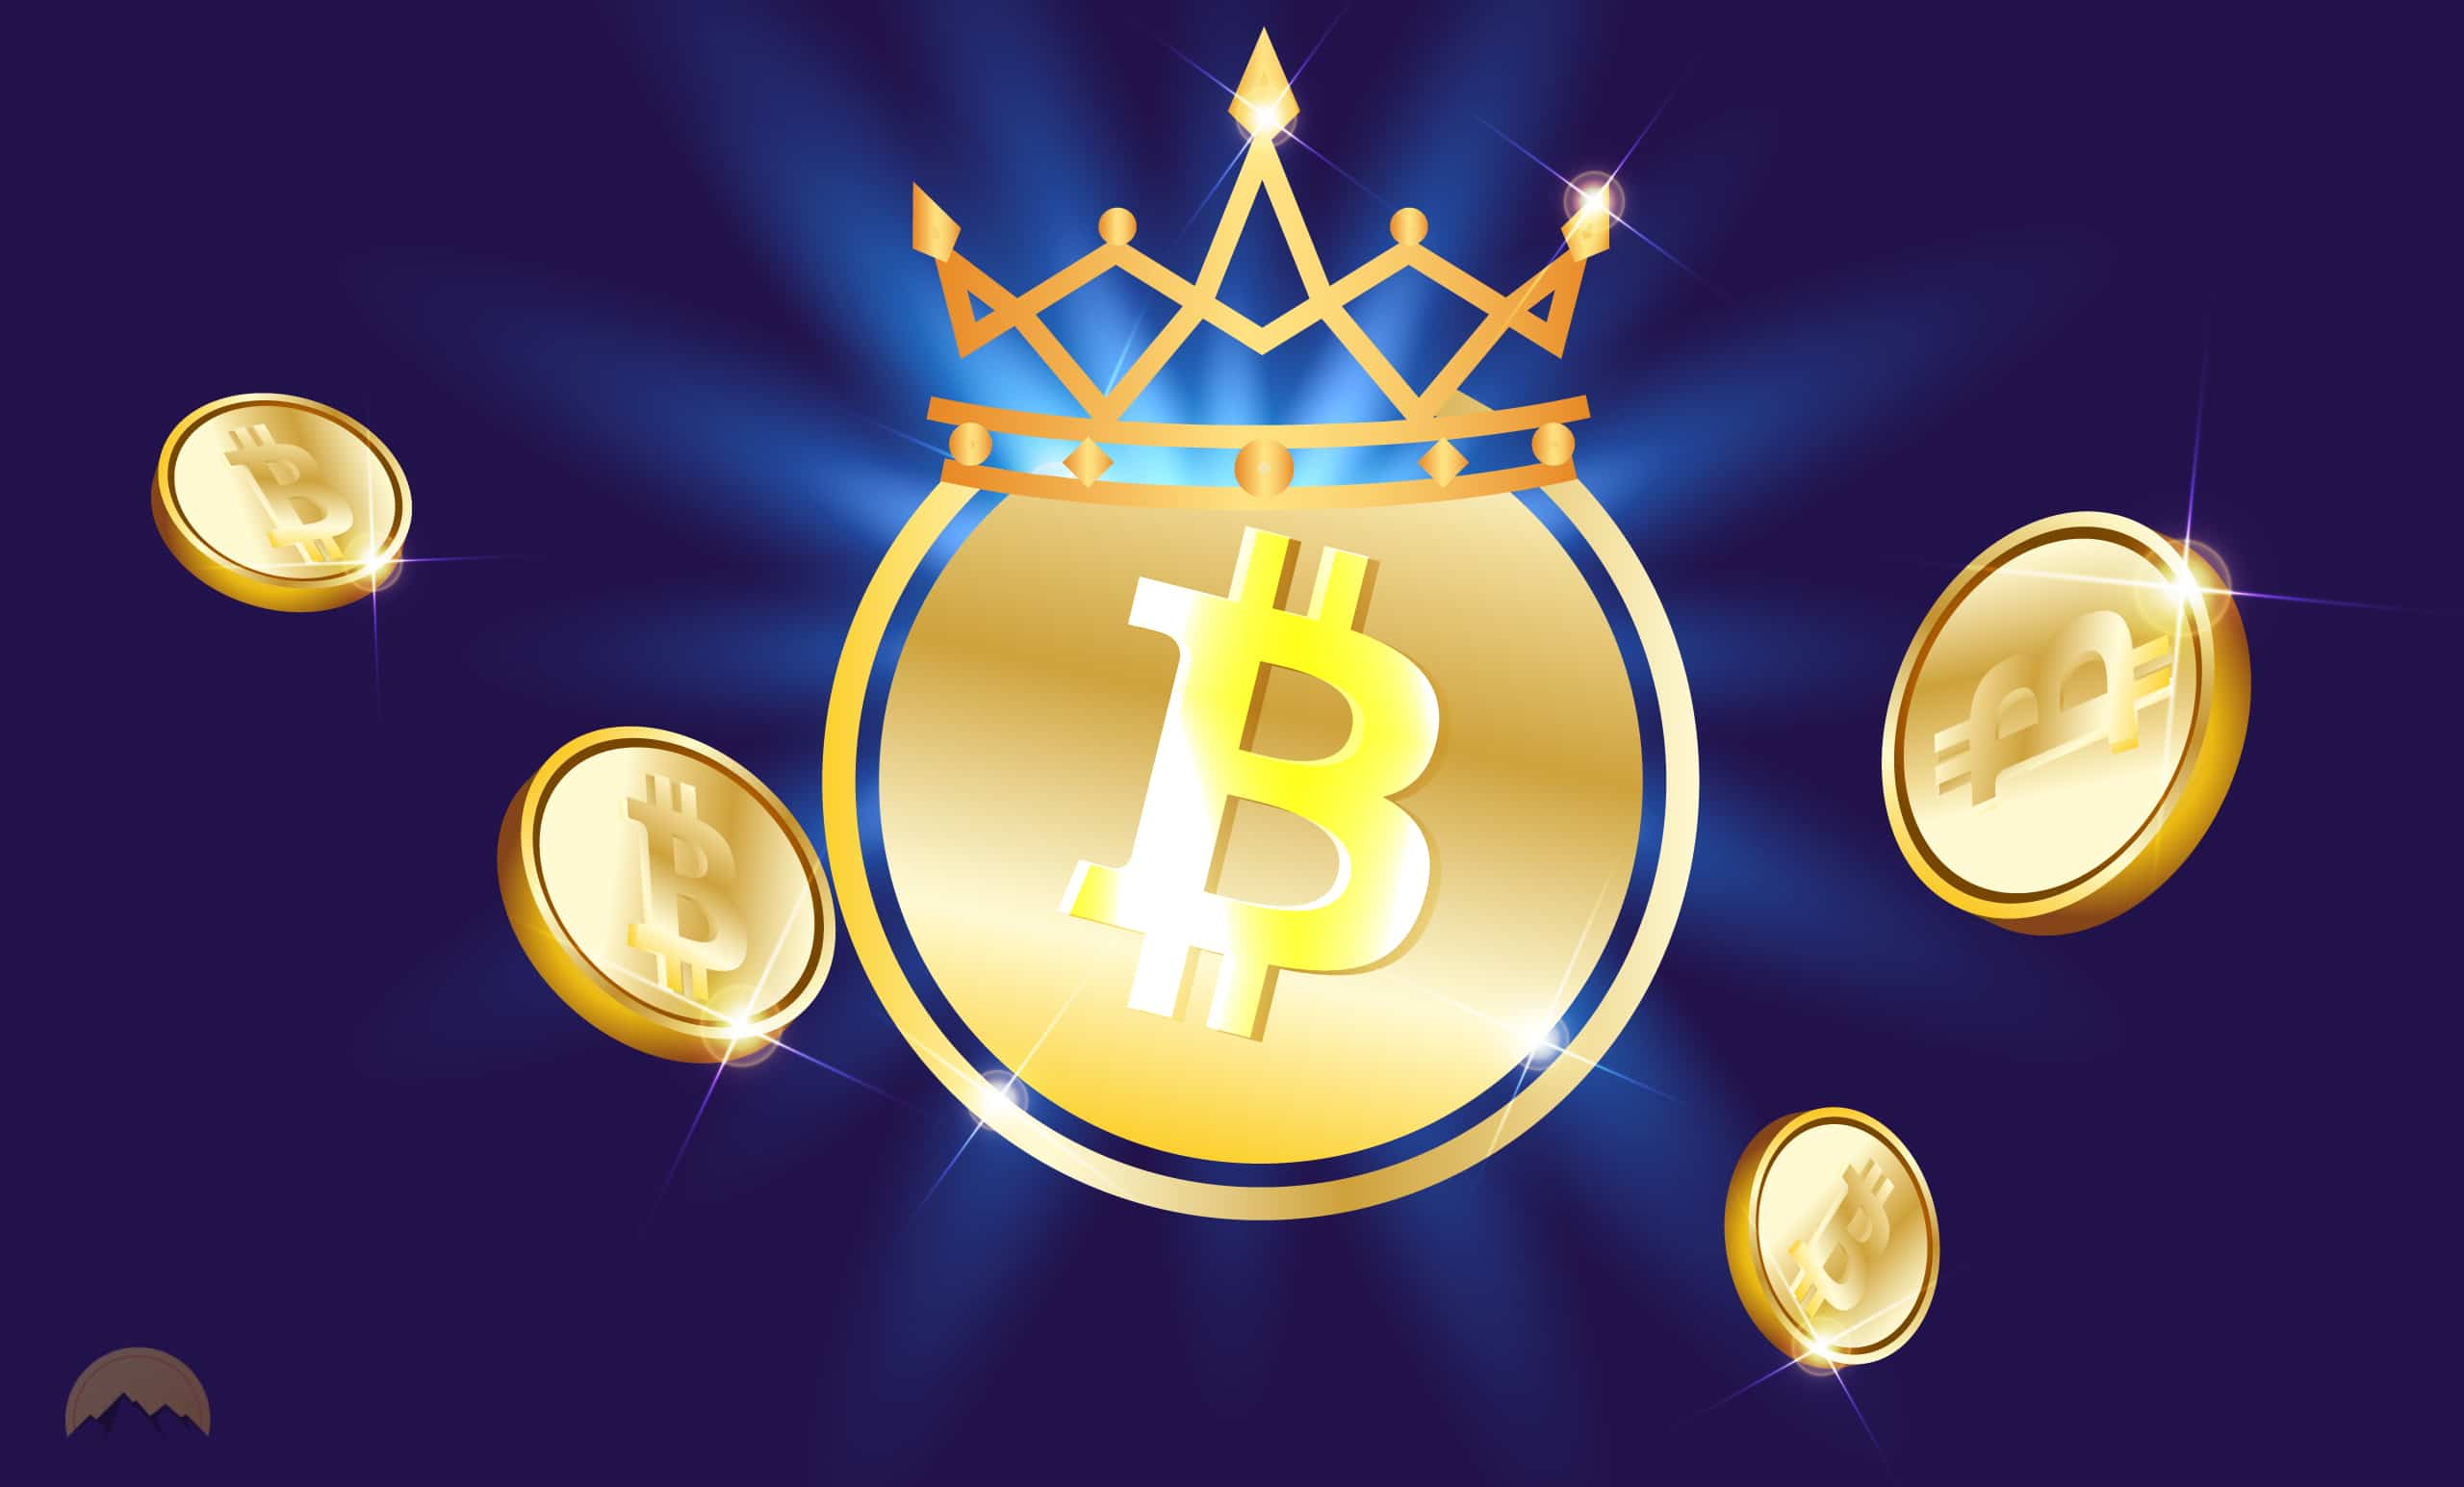 Are You a Bitcoin Maximalist? A Quick Glimpse into this Crypto Ideology